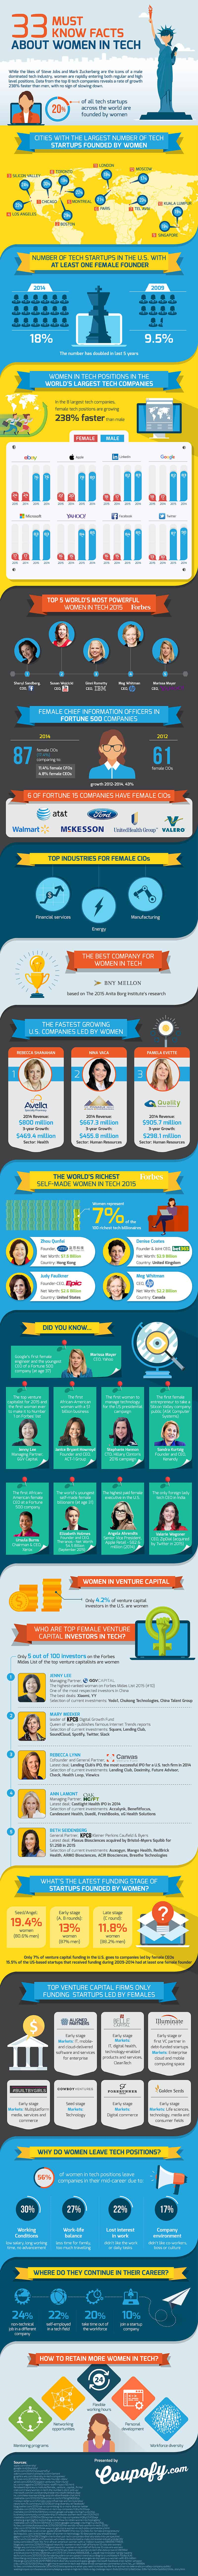 How Do Women Get on as Entrepreneurs and Employees in Technology Business (Infographic)